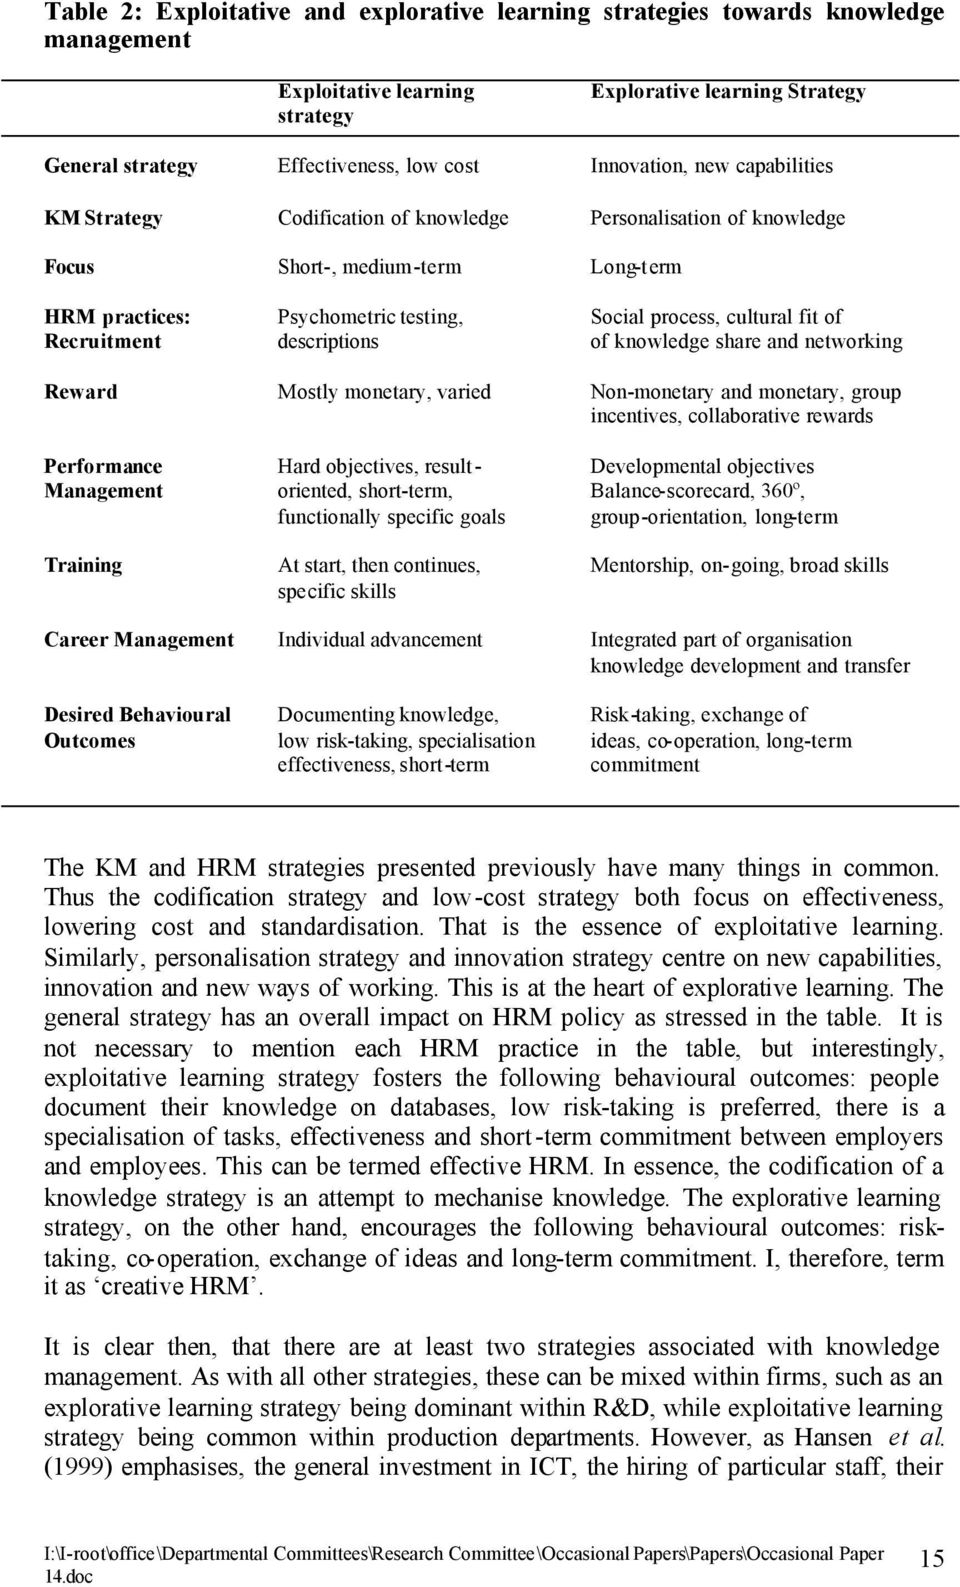 knowledge management and creative hrm pdf of recruitment descriptions of knowledge share and networking reward mostly monetary varied non monetary